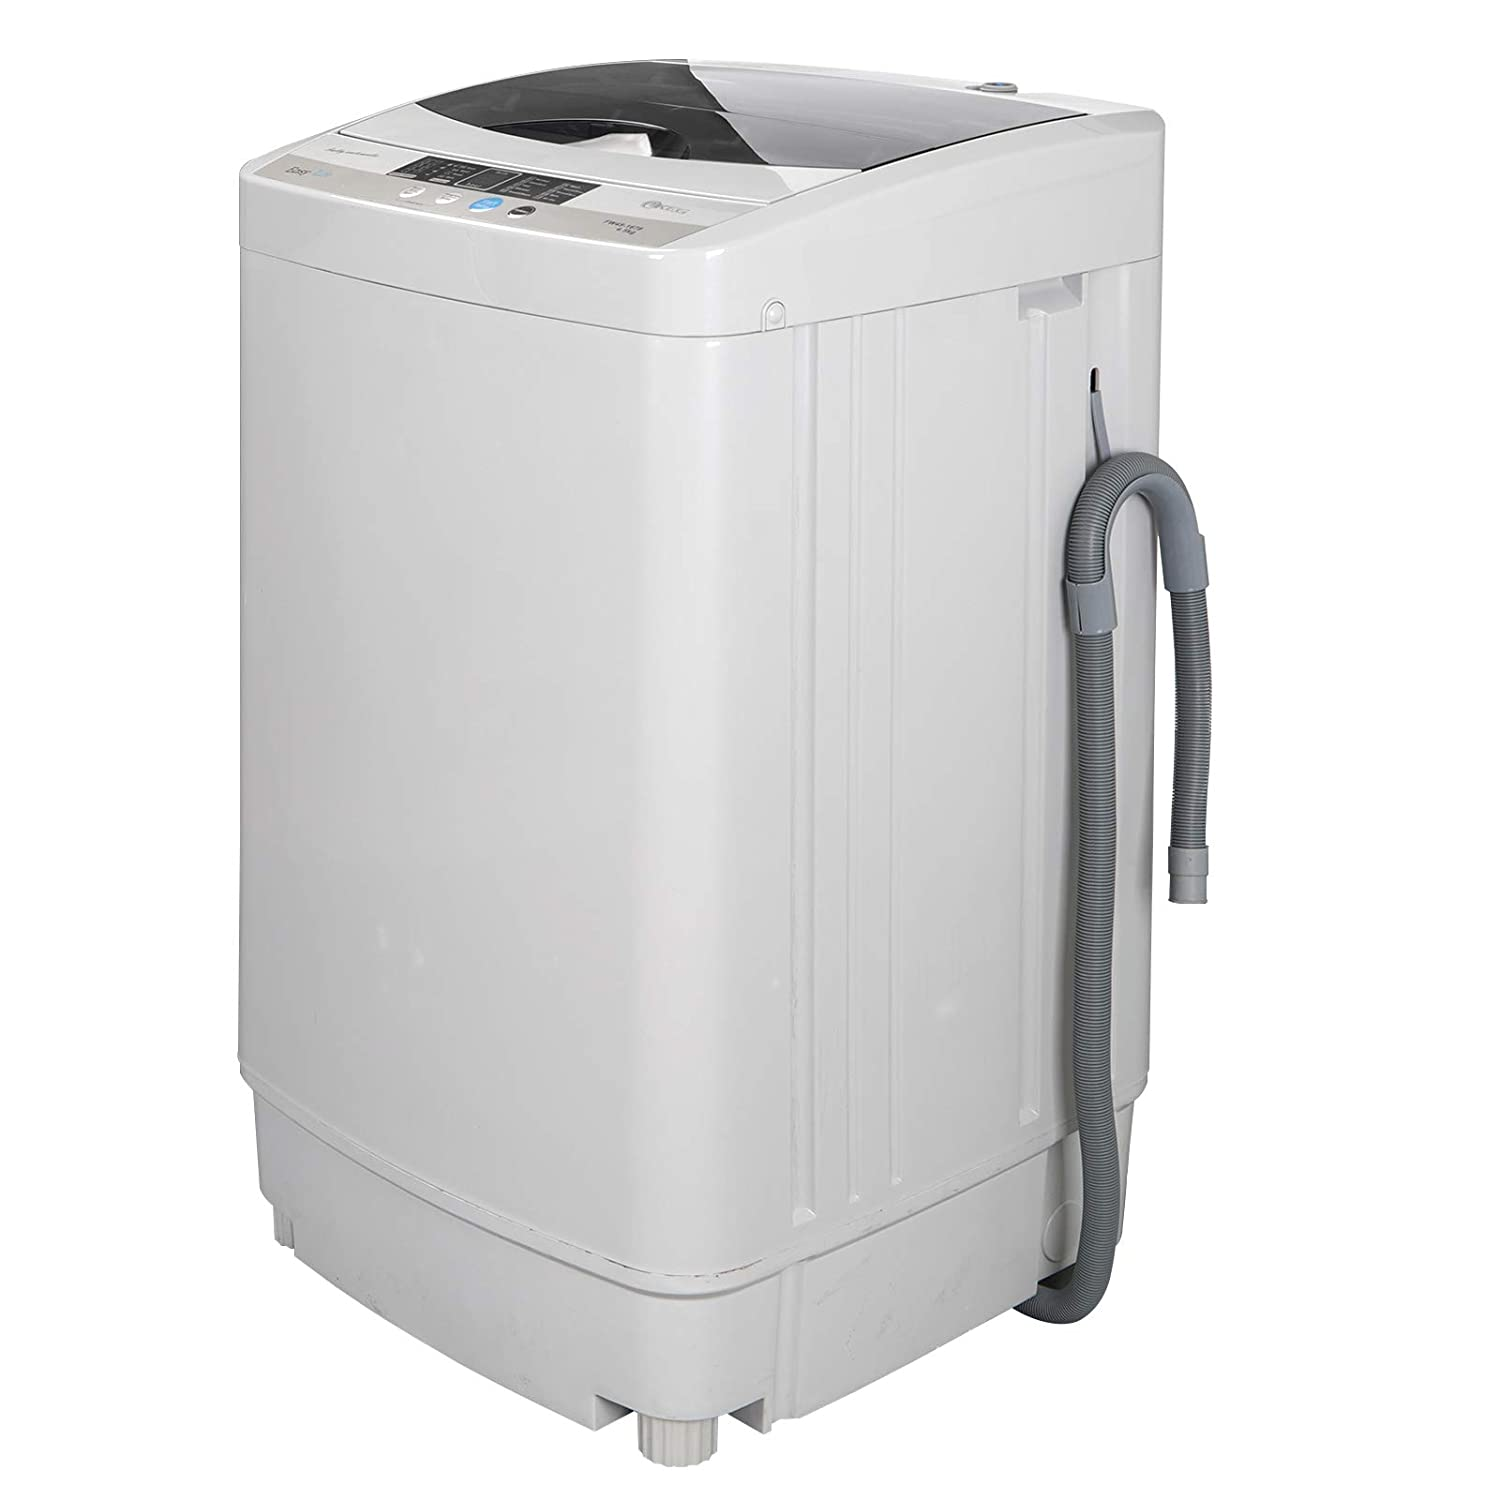 ZENSTYLE Portable Compact Design Multifunctional Laundry Washer/Spinner Fully Automatic 10 LB Top Load Mini Washing Machine w/Drain Pump, 5.74 FT Power Cord, 6.57 FT Inlet Hose